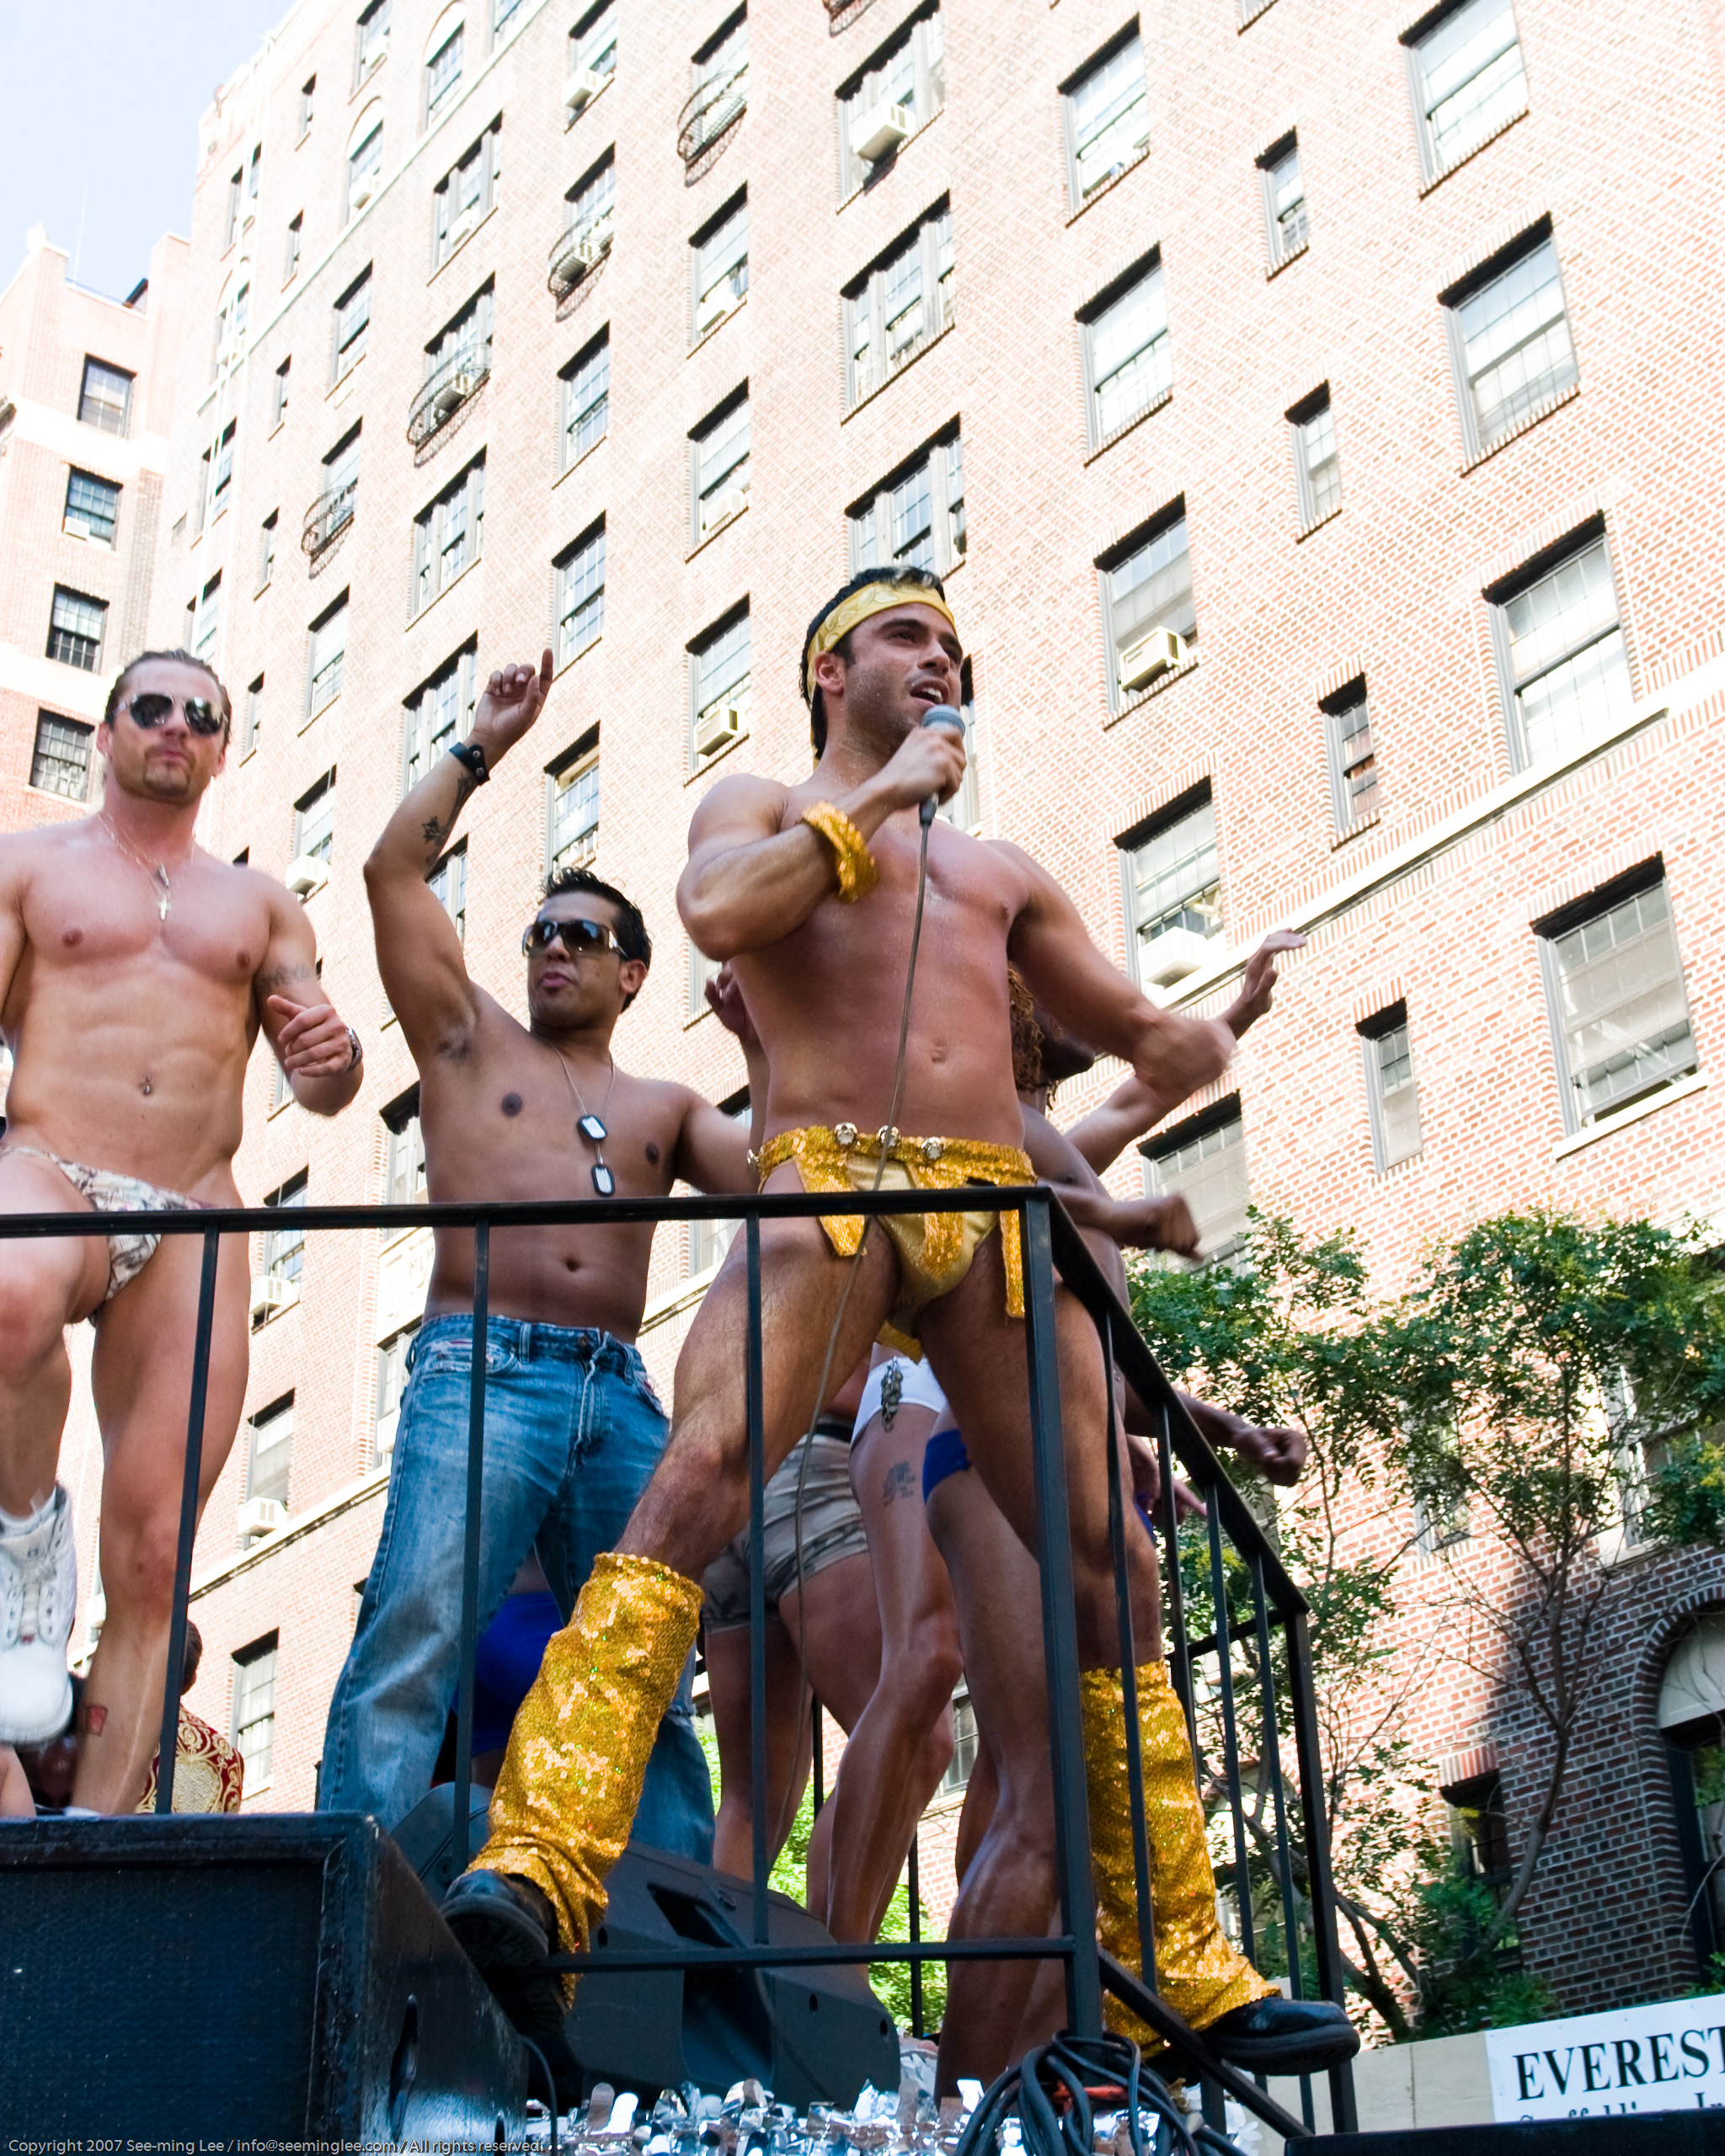 Gay Pride New York 2007 - SML (693995949).jpg English: http://blog.seeminglee.com/2007/08/gay-pride-new-york-2007.html Photograph taken at the Gay Pride